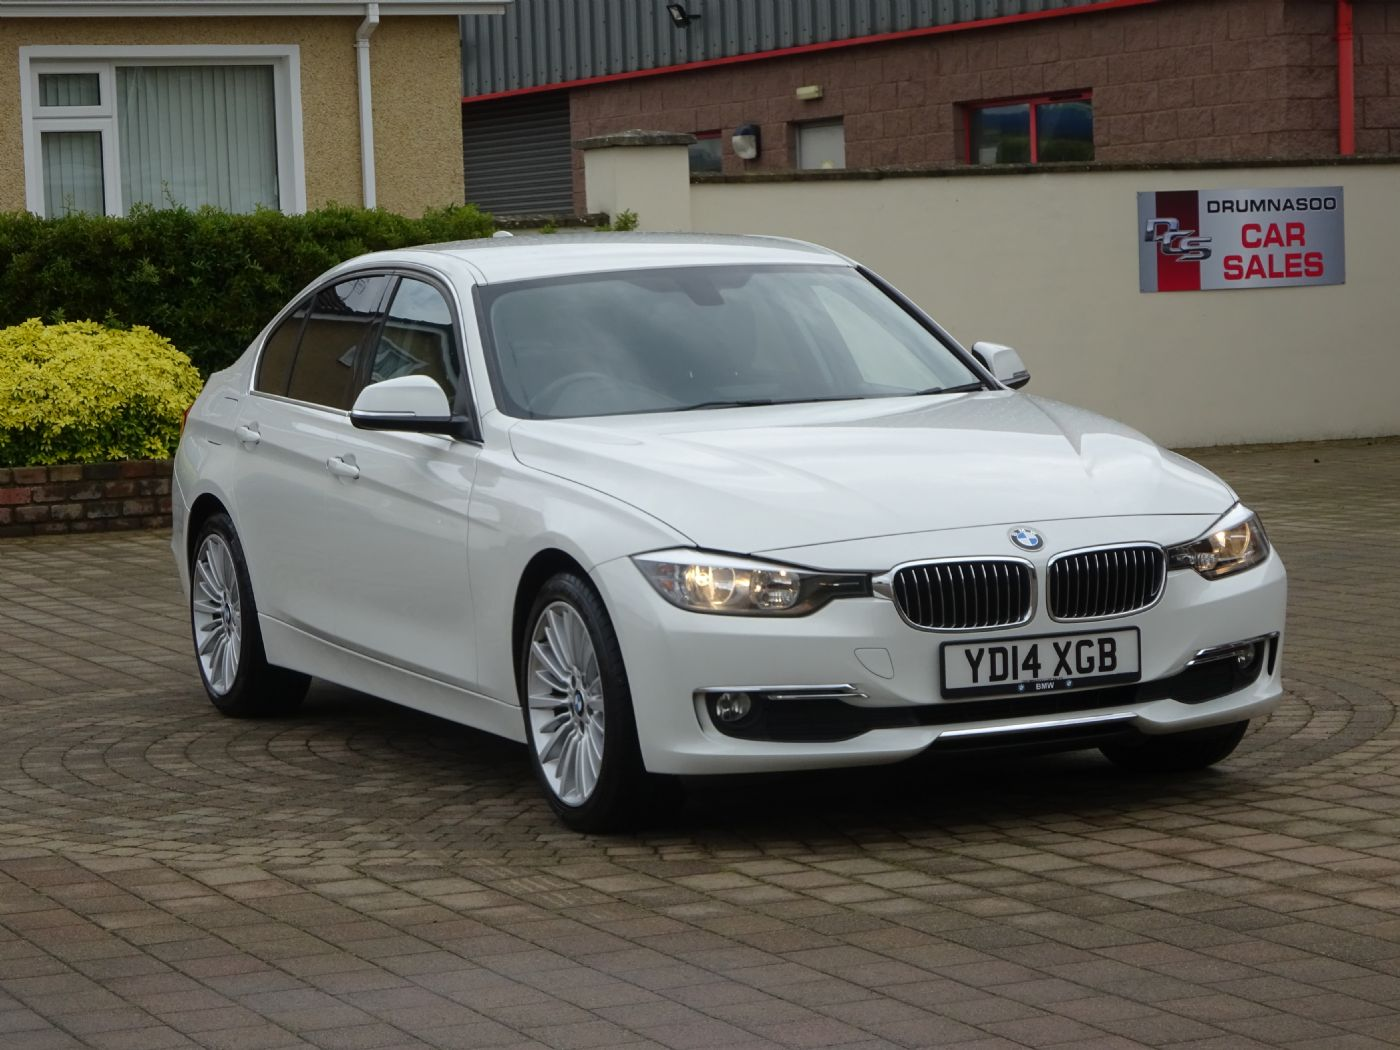 BMW 320D Luxury Auto , £30 Road tax, Sat nav